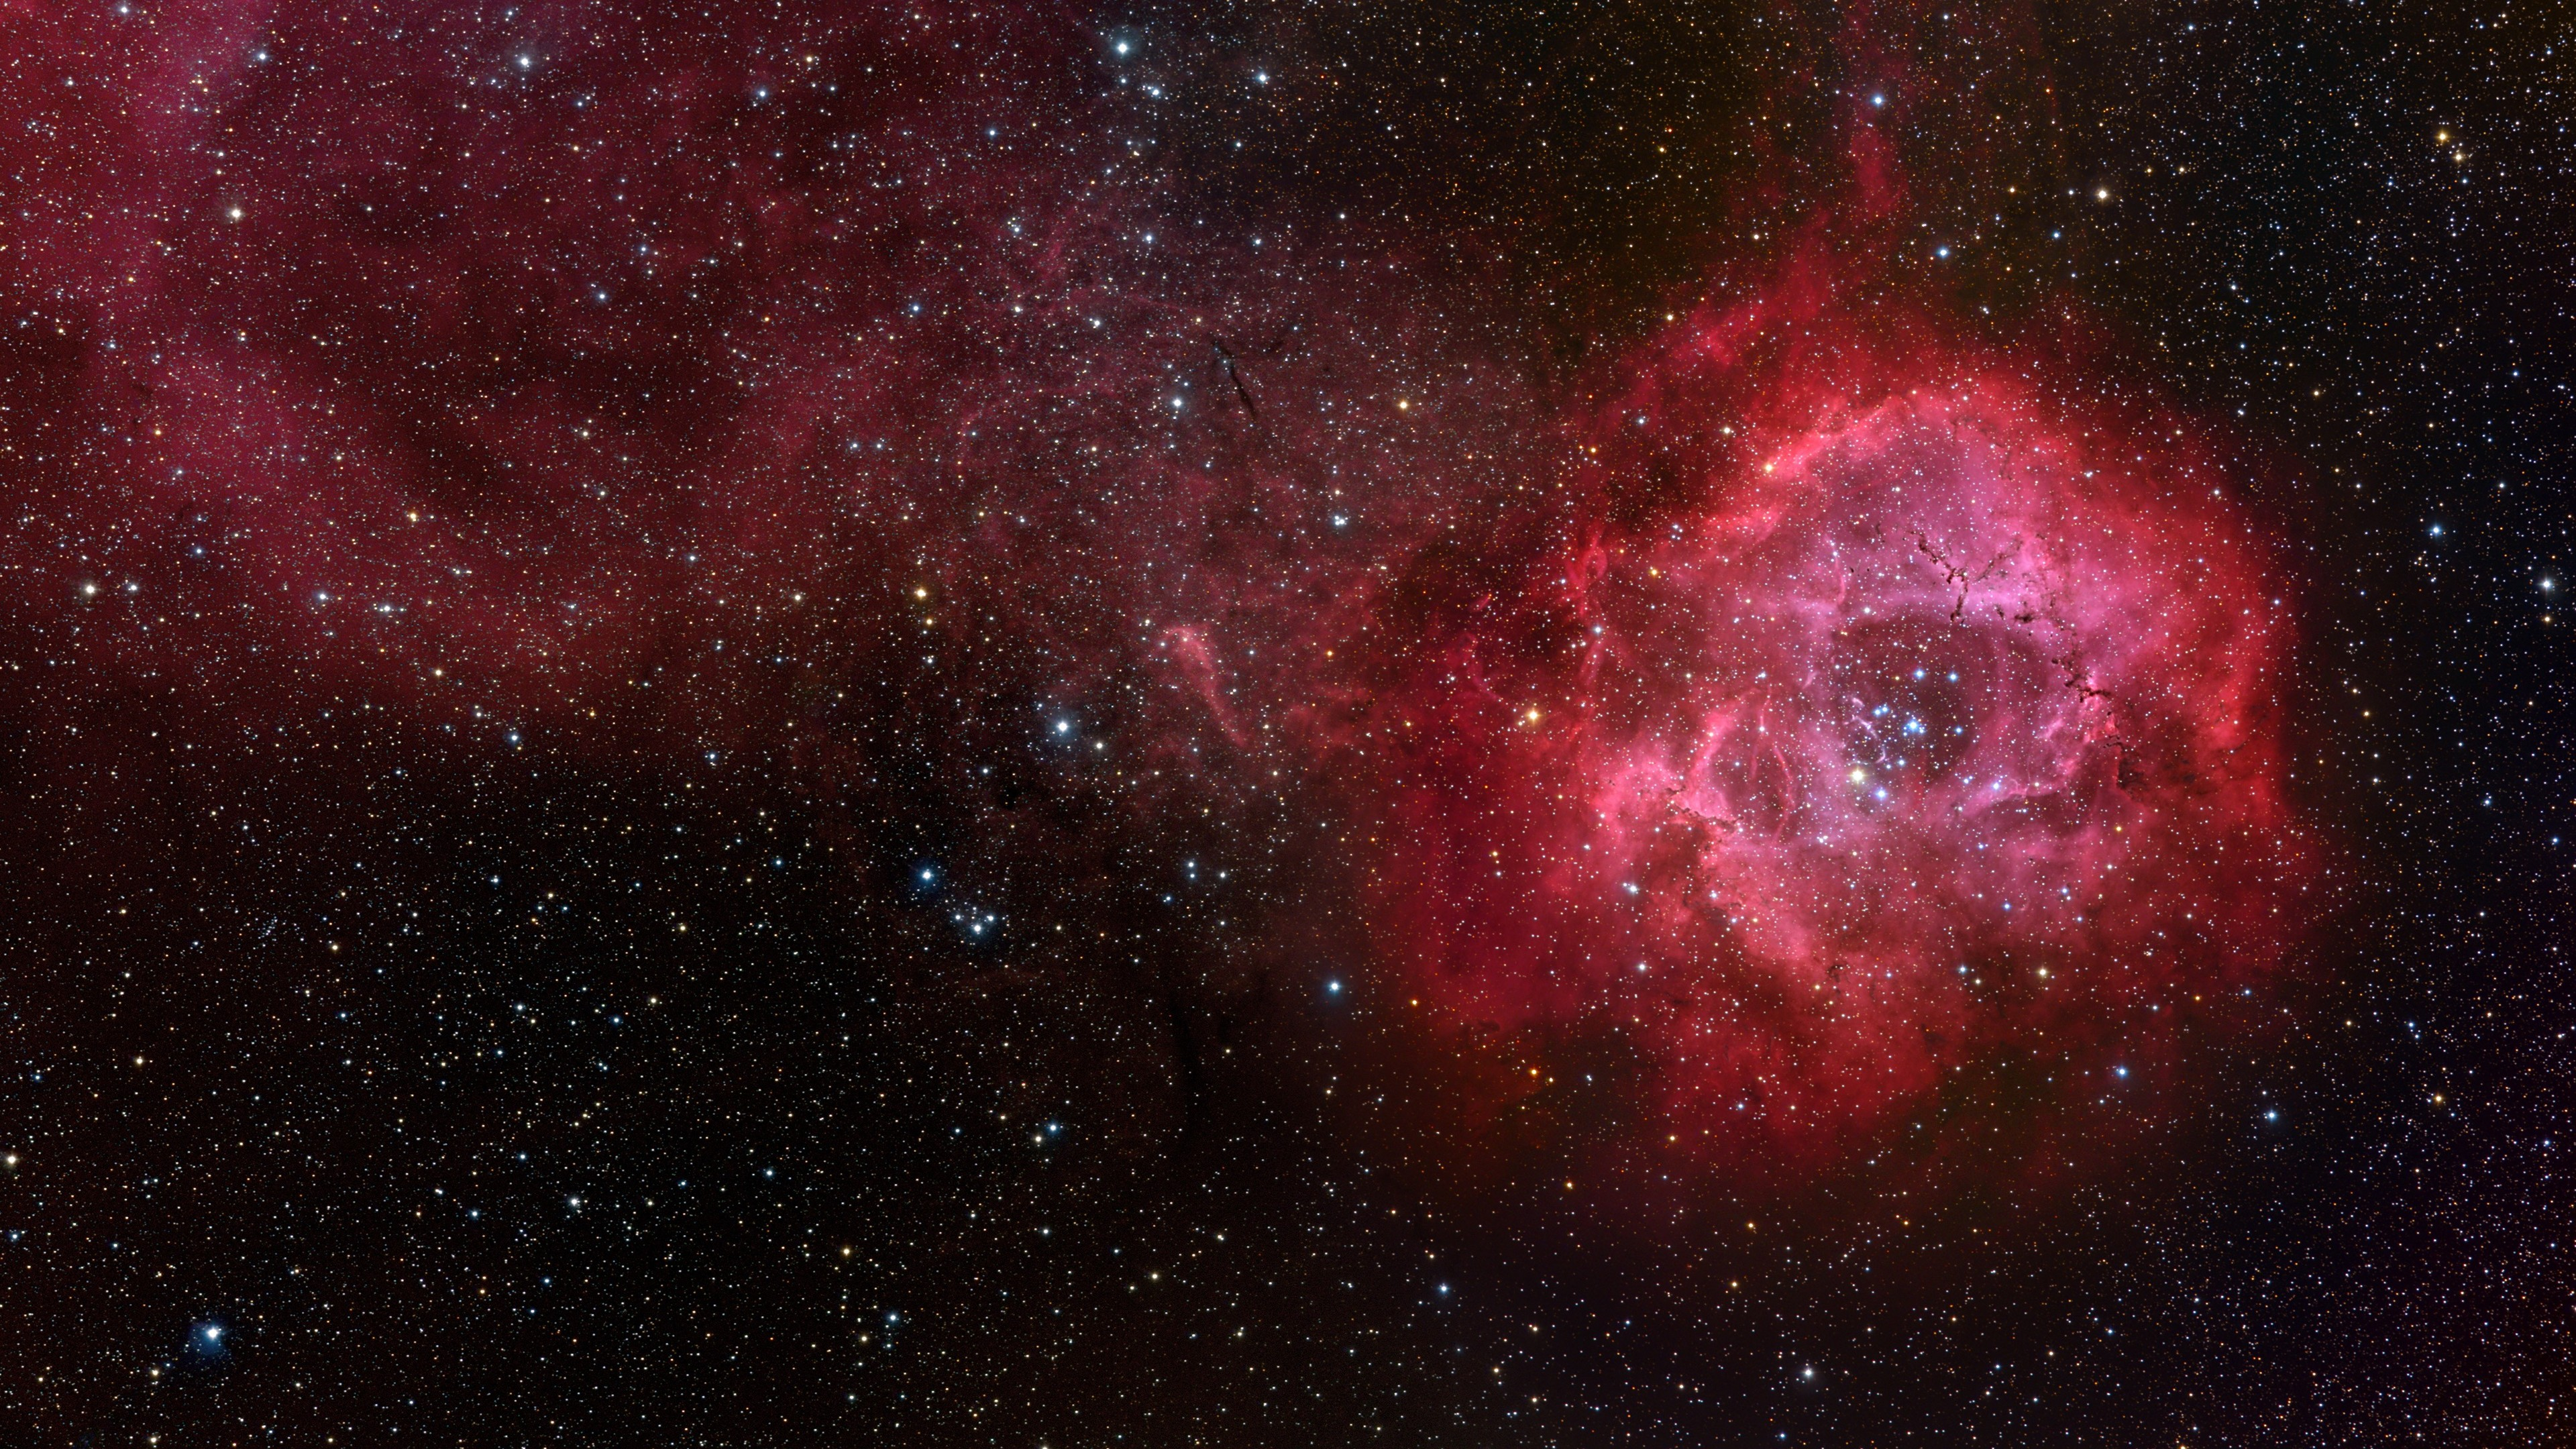 red galaxy 4k 1546279115 - Red Galaxy 4k - universe wallpapers, hd-wallpapers, galaxy wallpapers, digital universe wallpapers, 4k-wallpapers